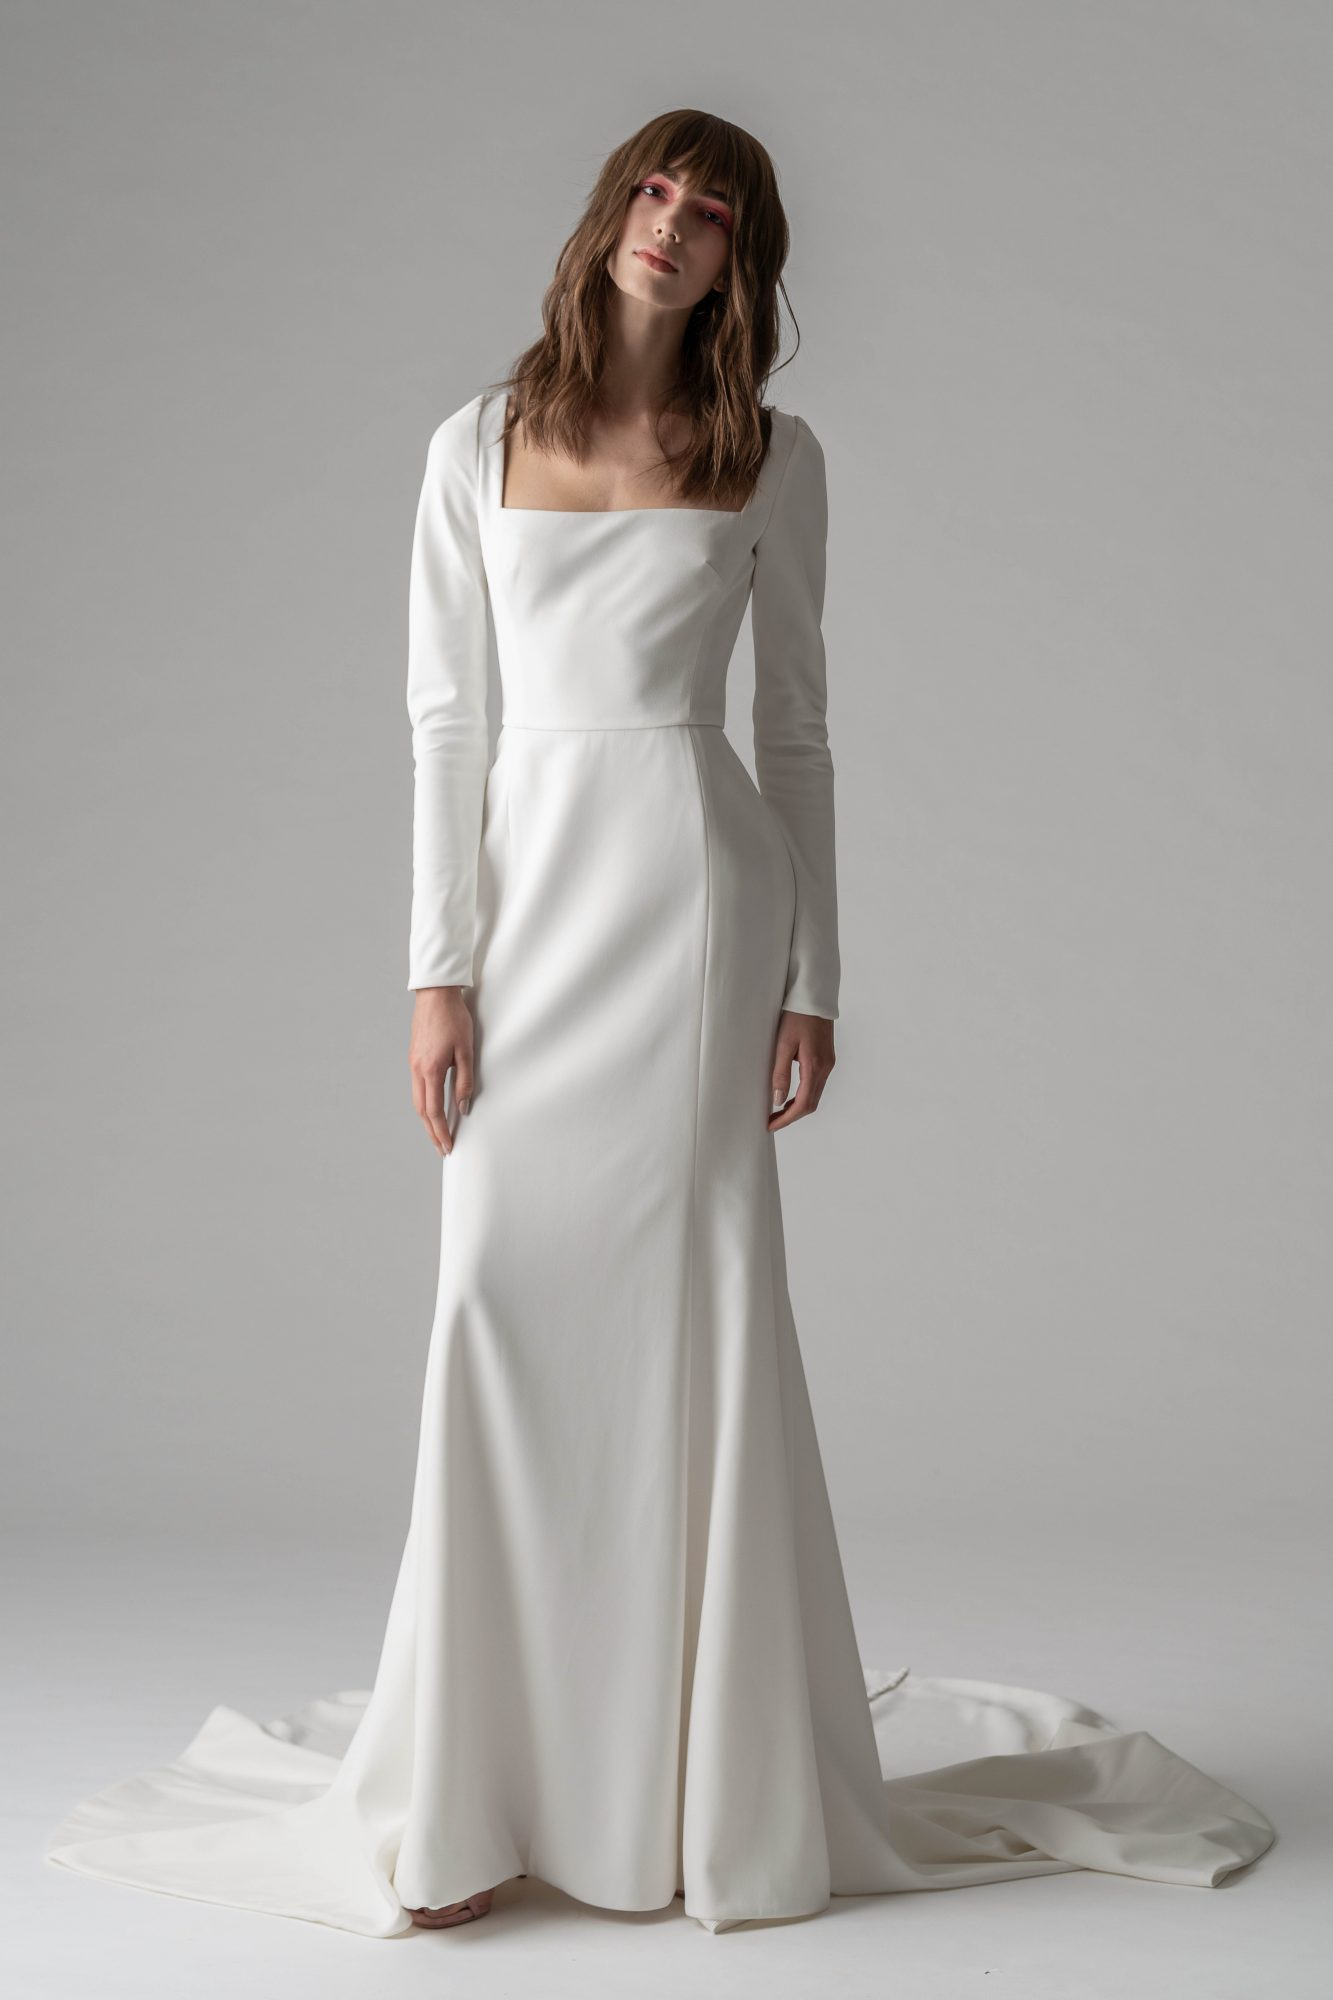 rivini by rita fall 2019 long sleeve sheath wedding dress